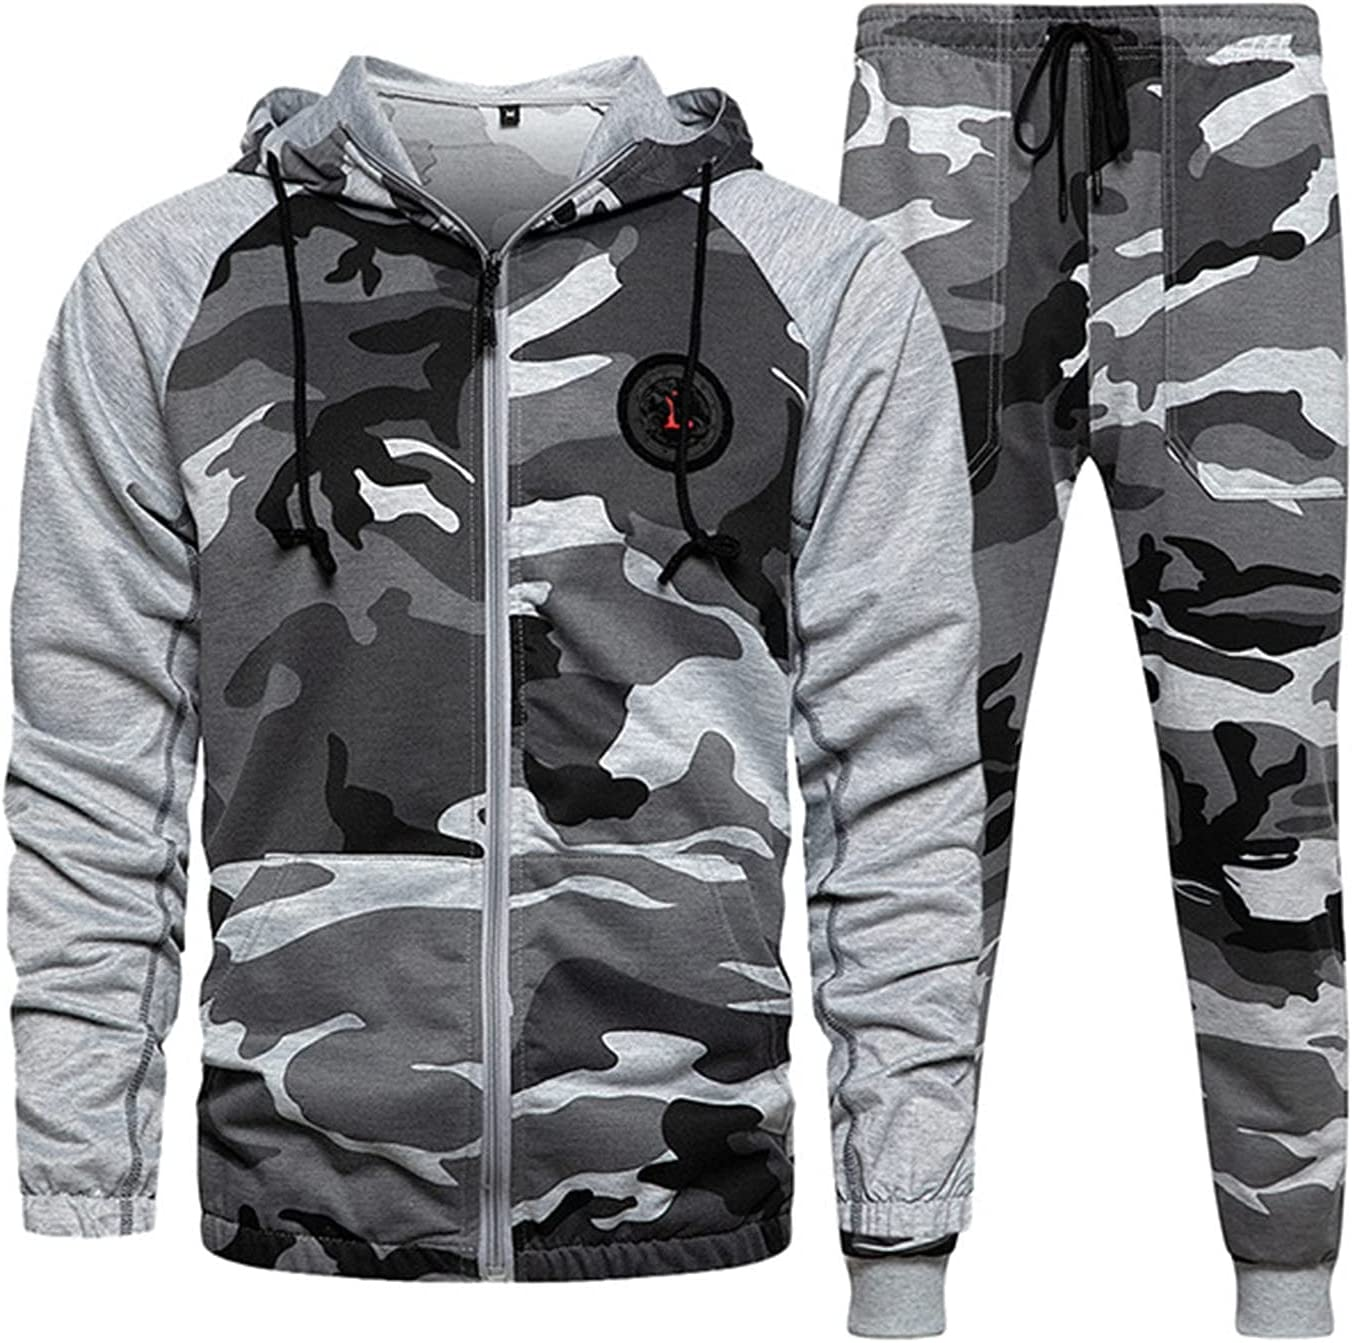 2-Piece Men's Casual Tracksuit Colorado Springs Mall Set Animer and price revision Camouflage Full-Zip Running J